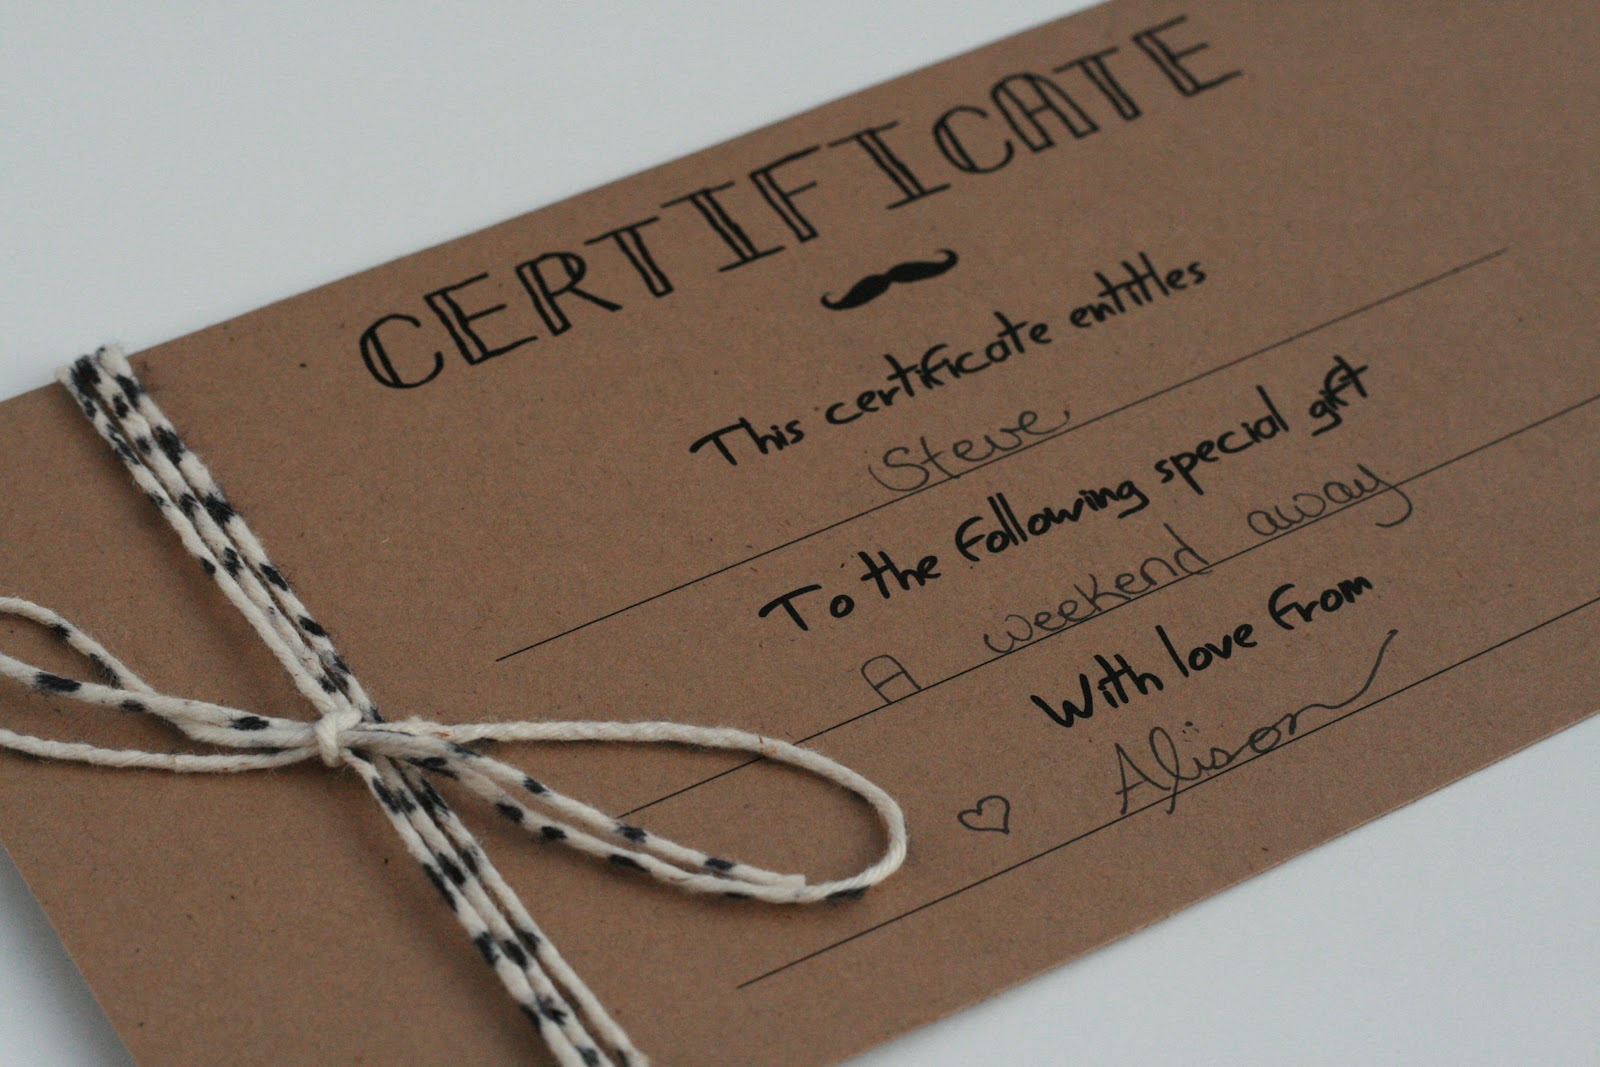 The petit cadeau printable gift certificates for men if you want to embellish your gift certificate i followed the diy bakers twine tutorial from a step in the journey to make my own bakers twine yelopaper